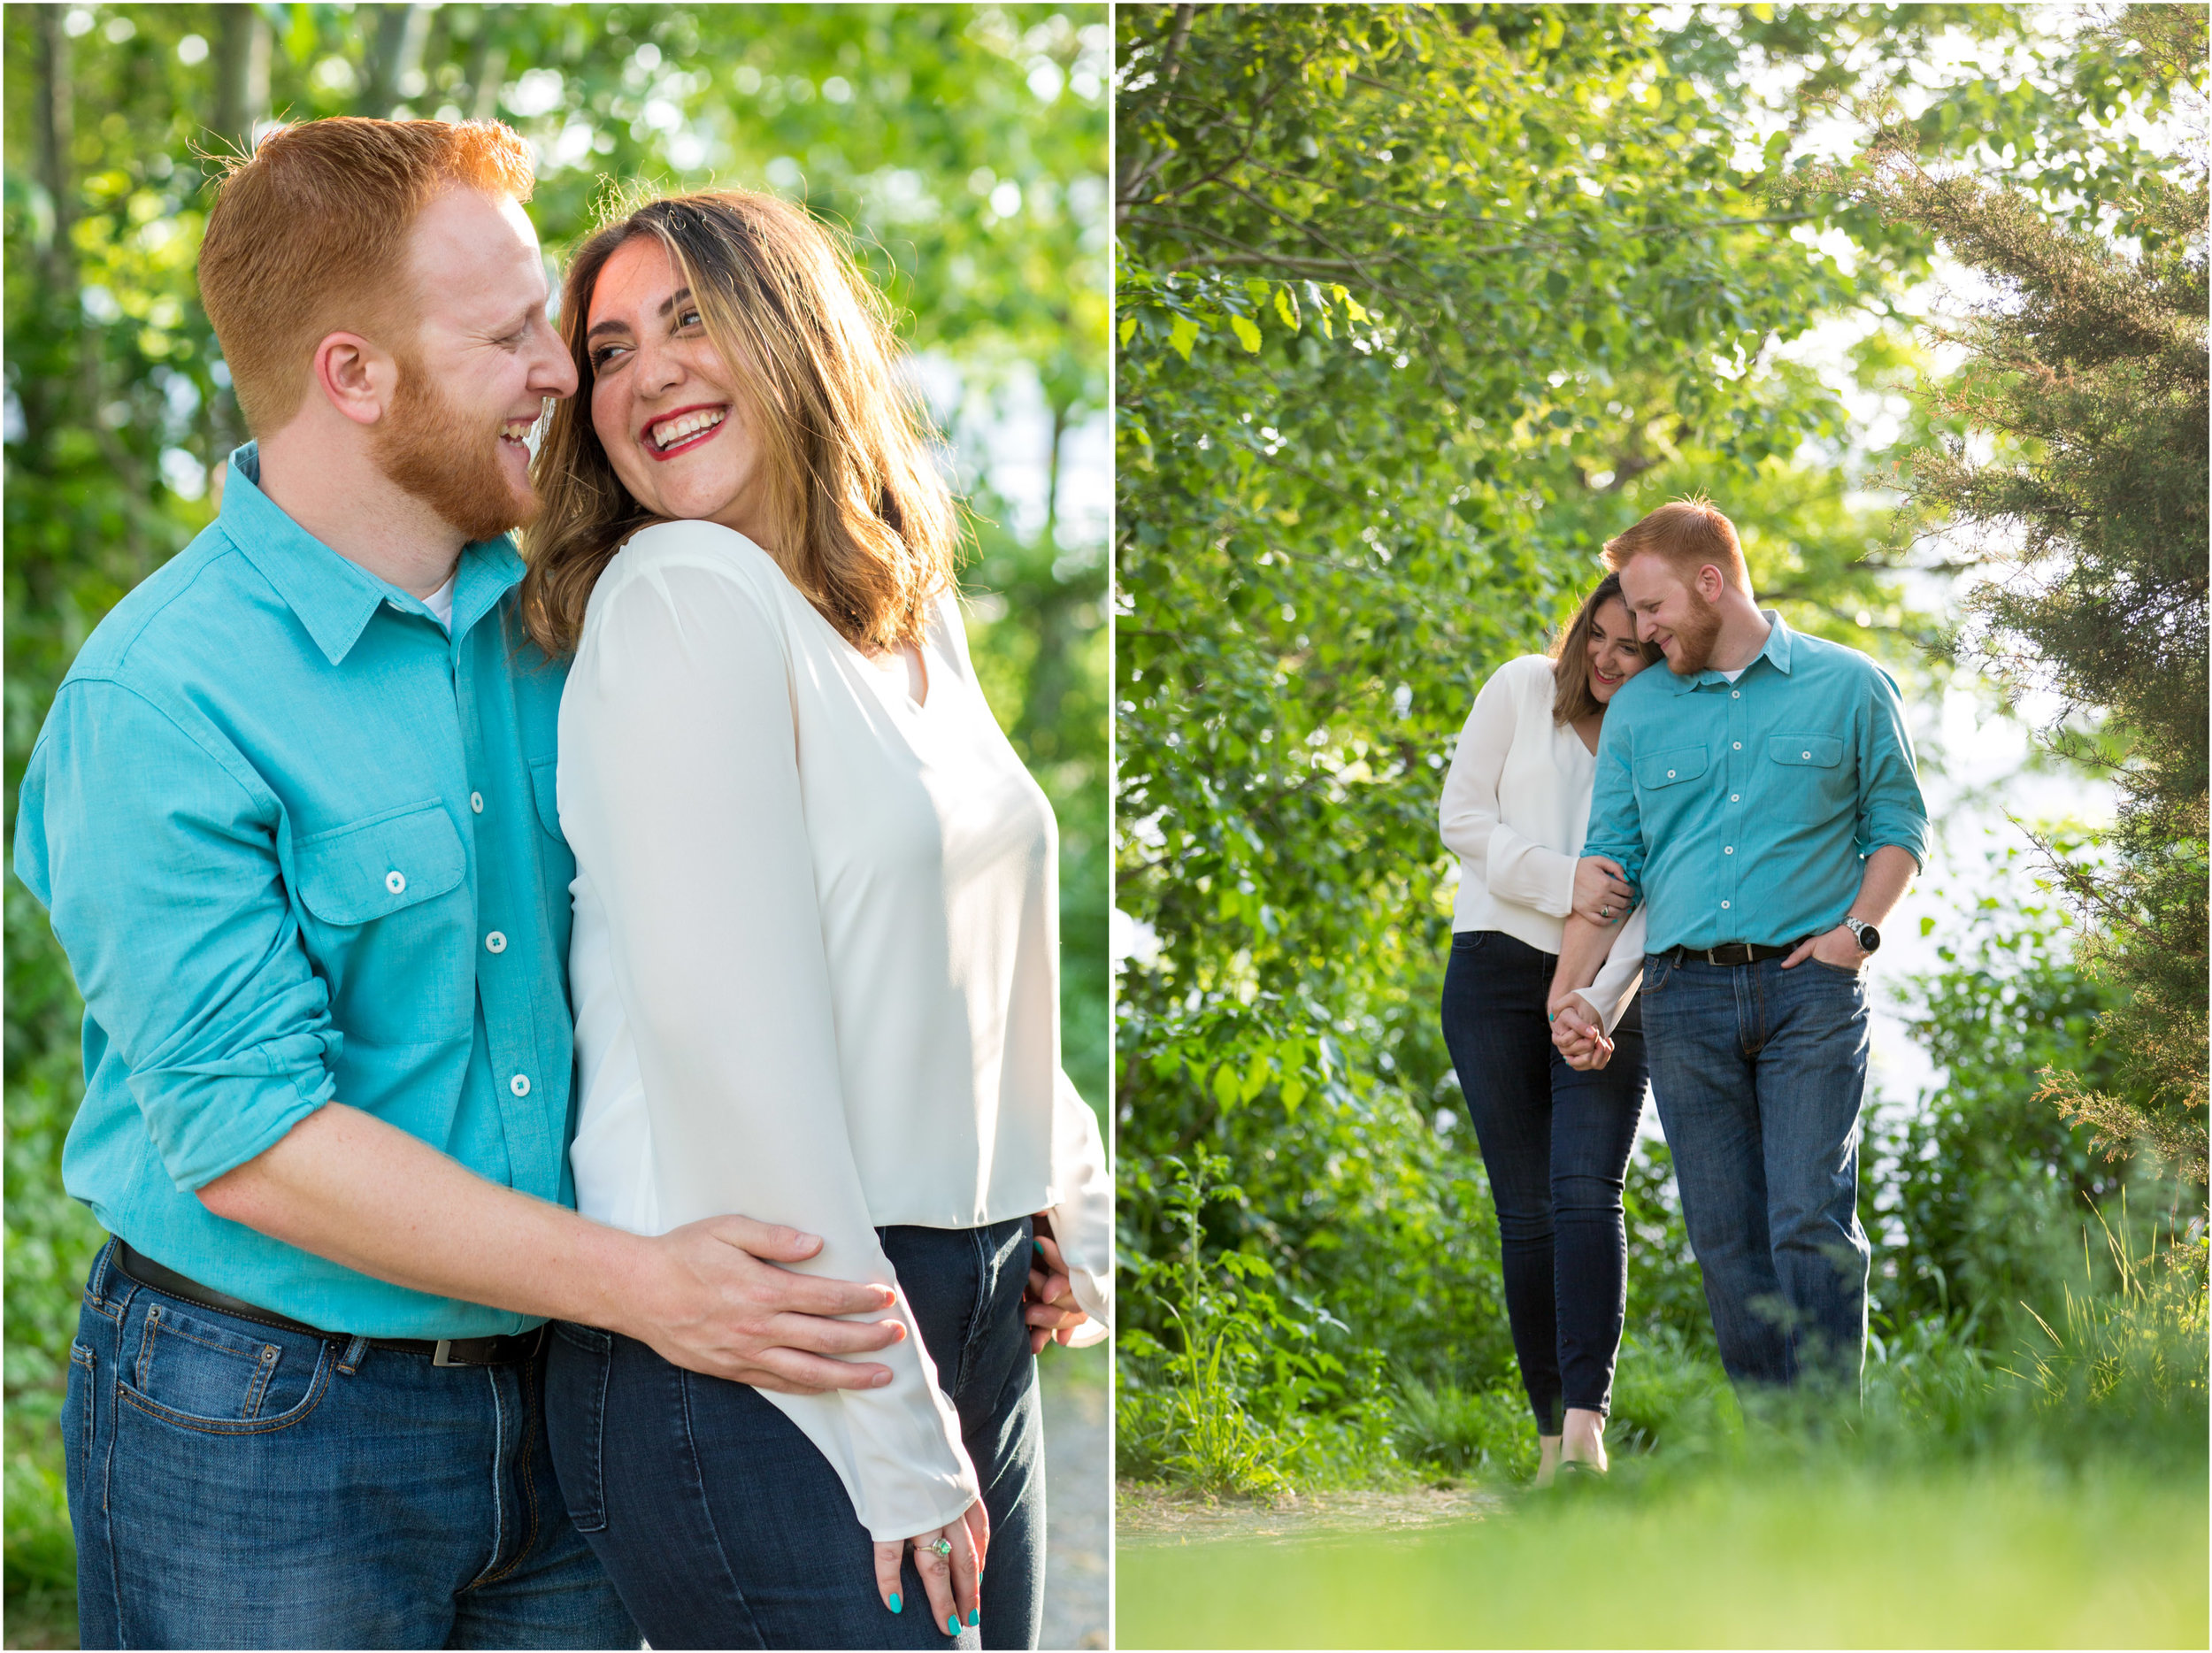 NYC Engagement Photo Session Shoot Gantry Plaza State Park Photographer New York City-18.jpg